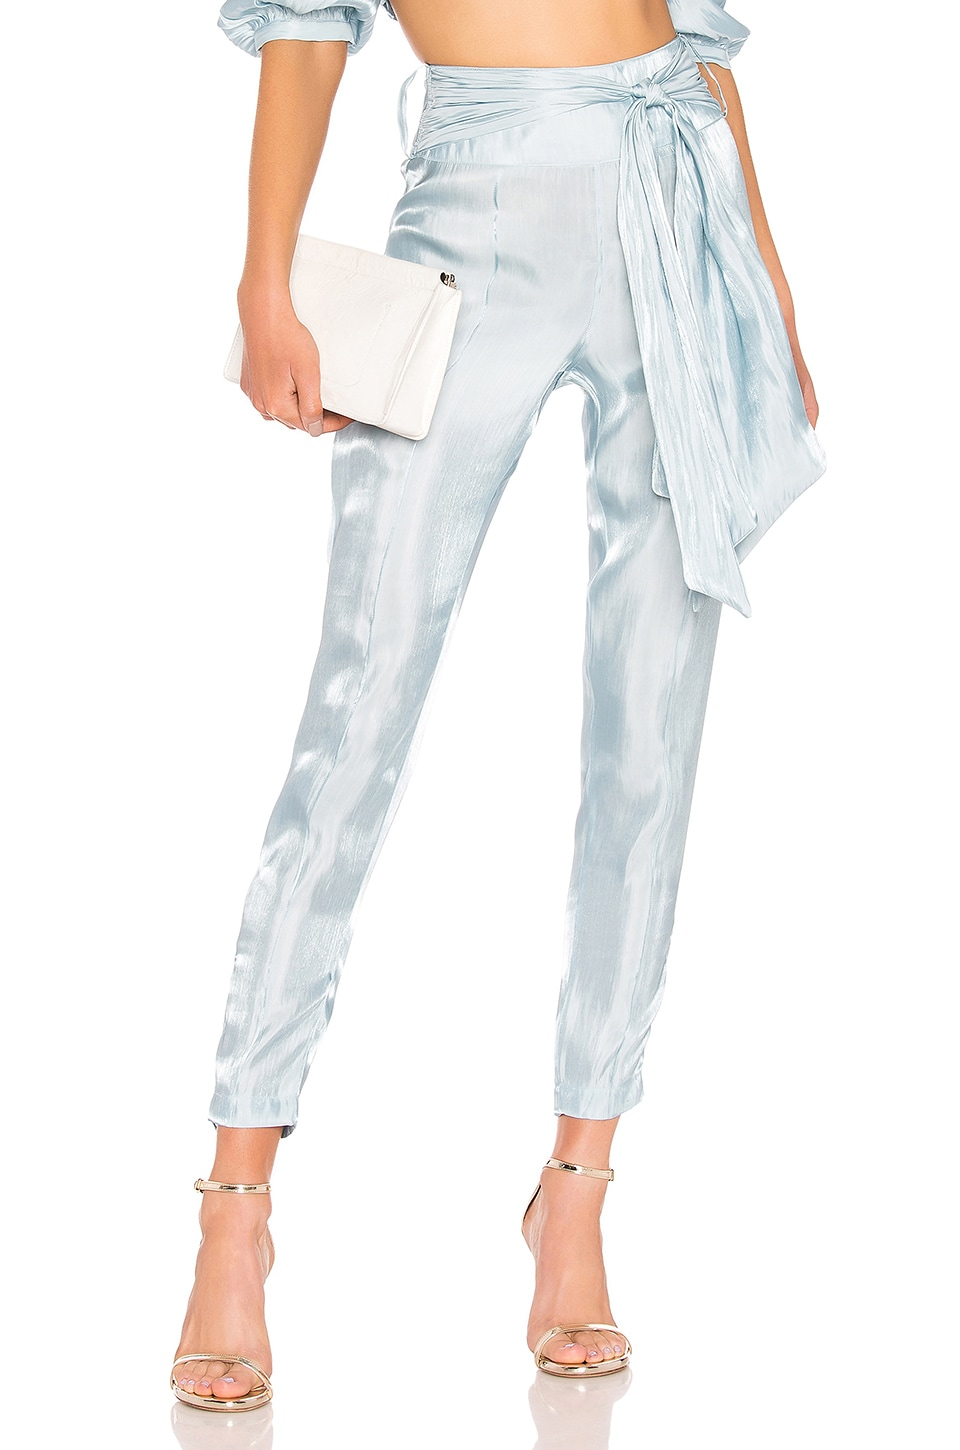 Atoir Wild Hearts Pant in Blue Bell